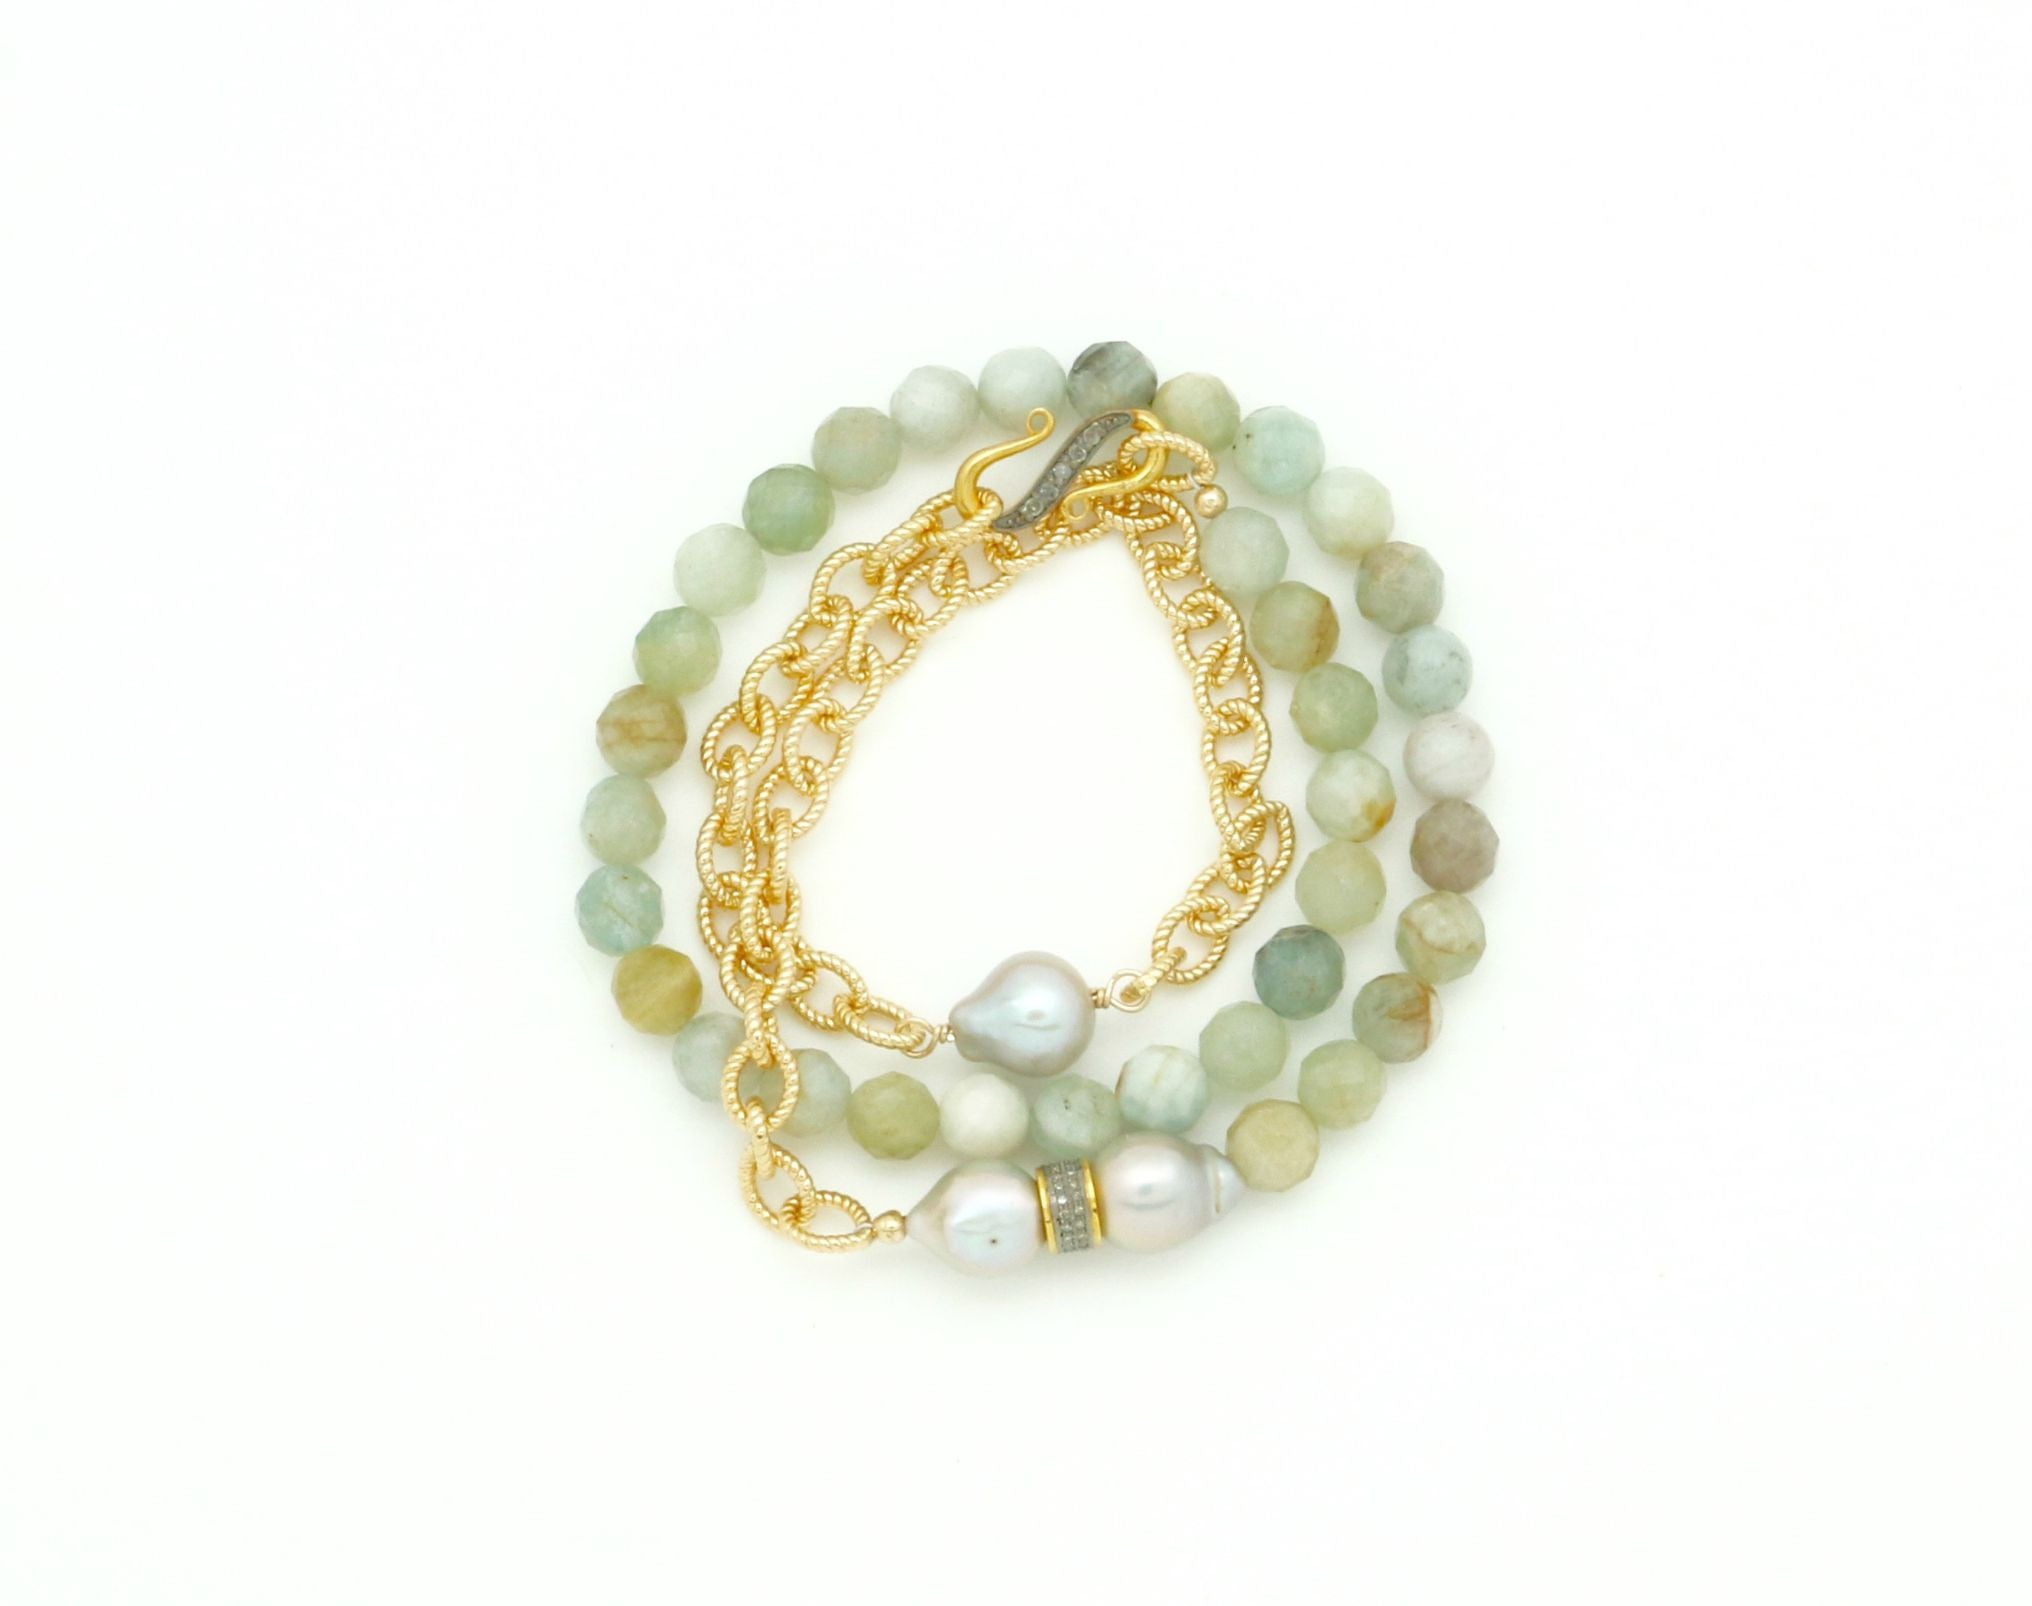 GOLD, PEARL AND DIAMOND WRAP BRACELET